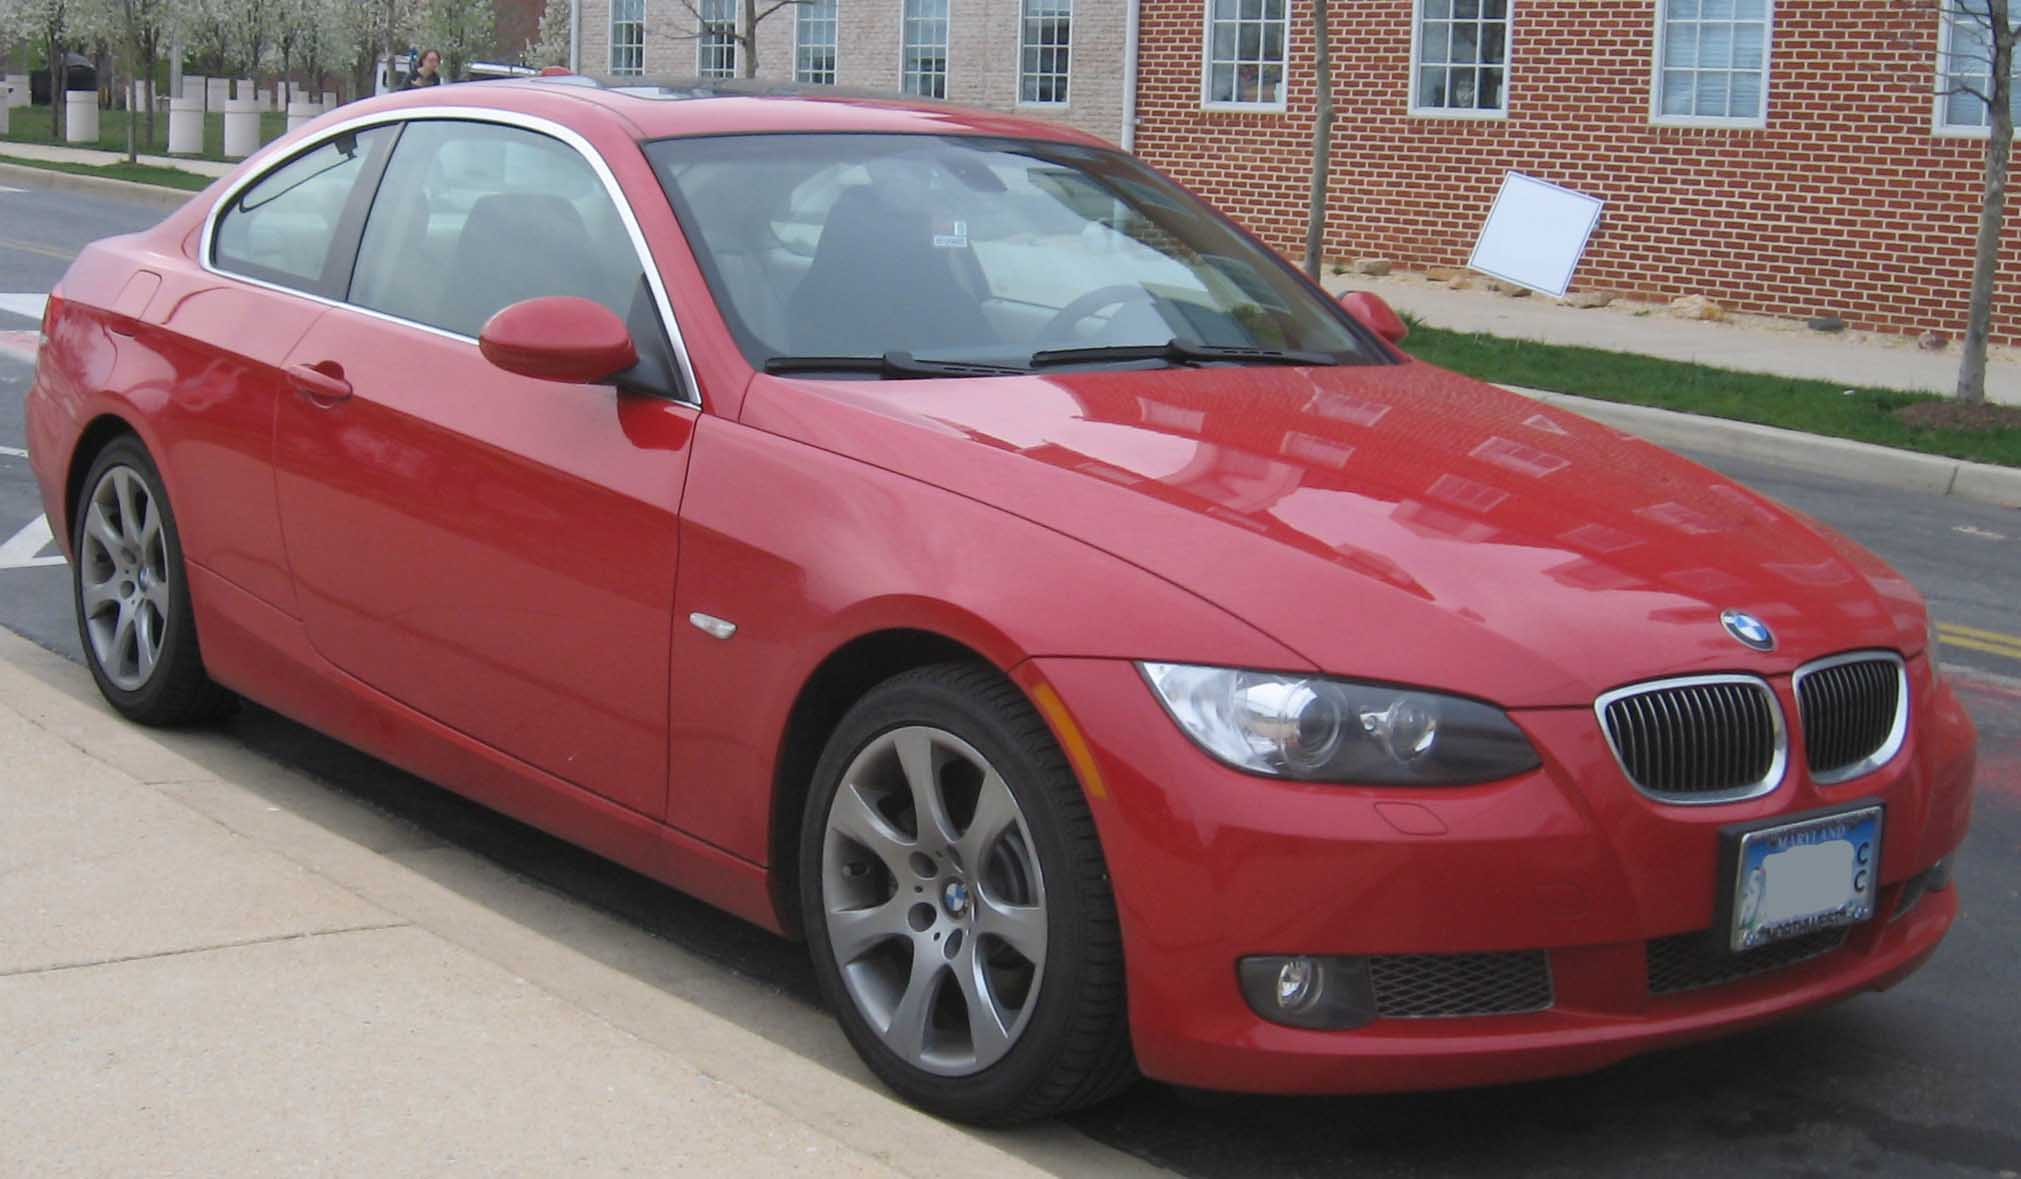 file:2008 bmw 328i coupe - wikimedia commons